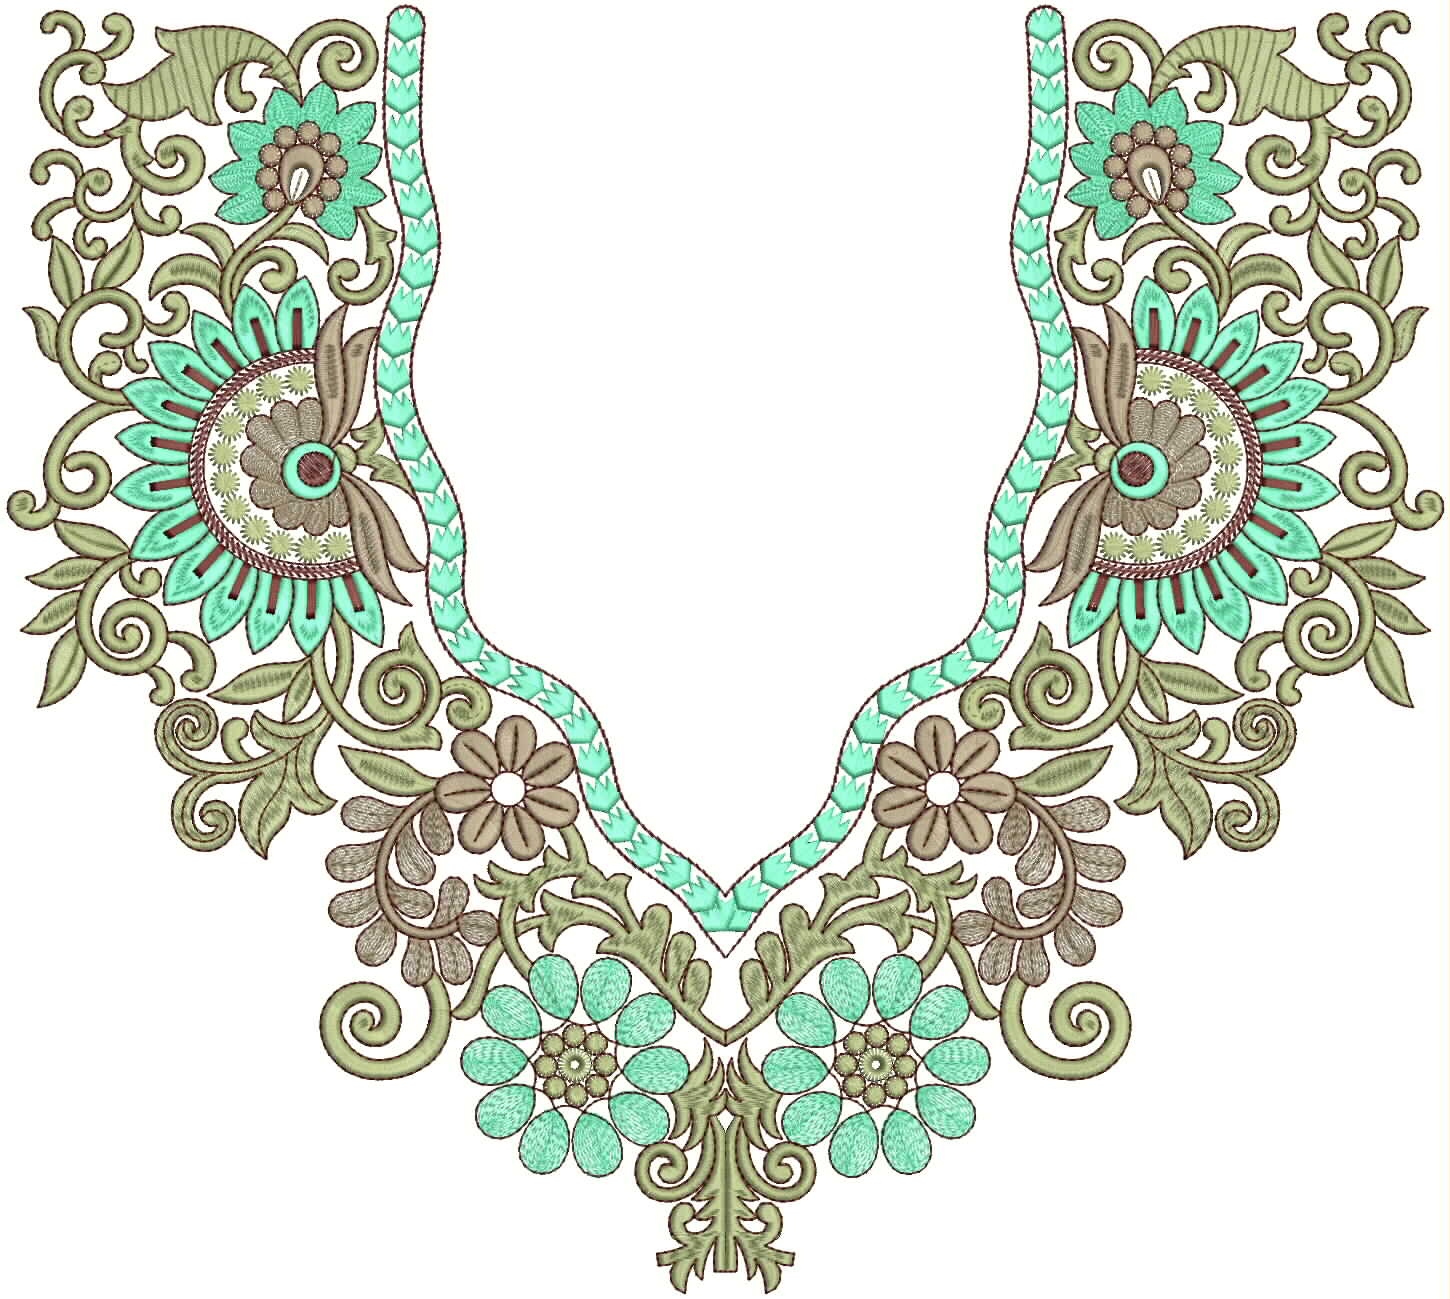 Ladies neck embroidery designs images wallpaper hd